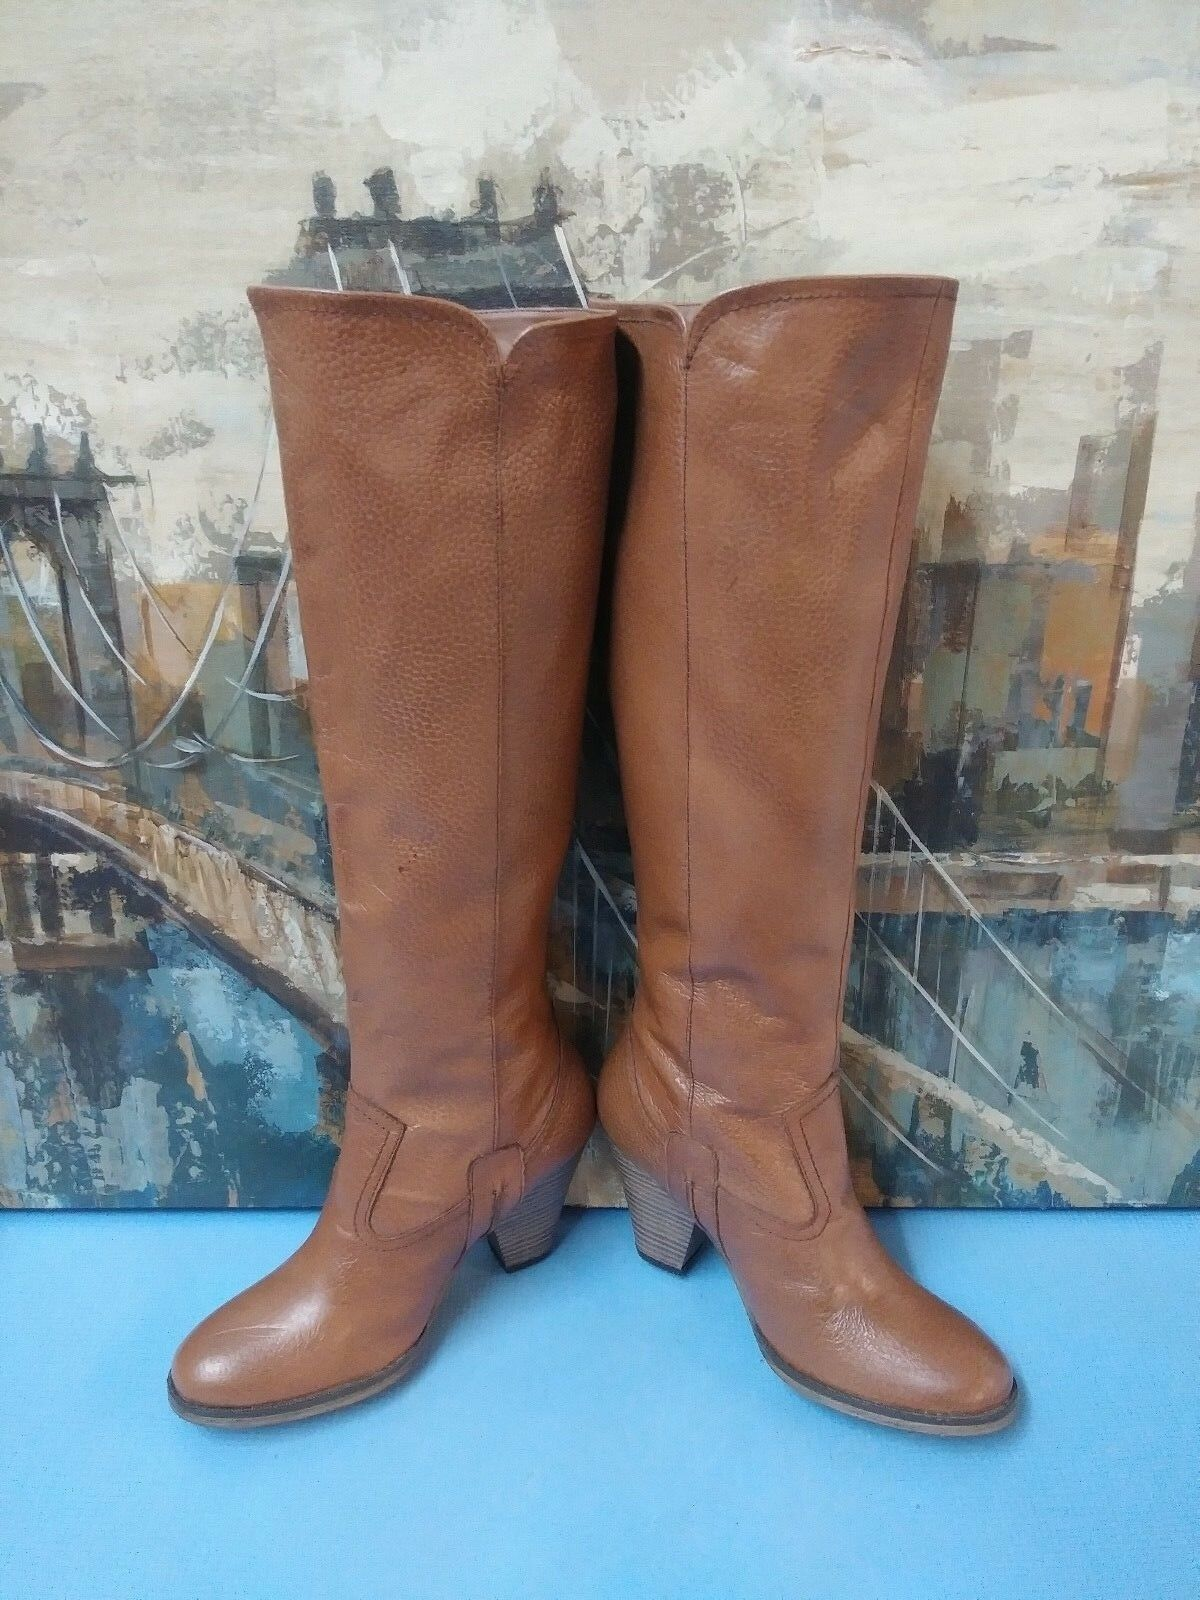 5ce227cea6b ... Naturalizer Tall Tall Tall Boots Women s size 6 Brown 1f38c5 ...